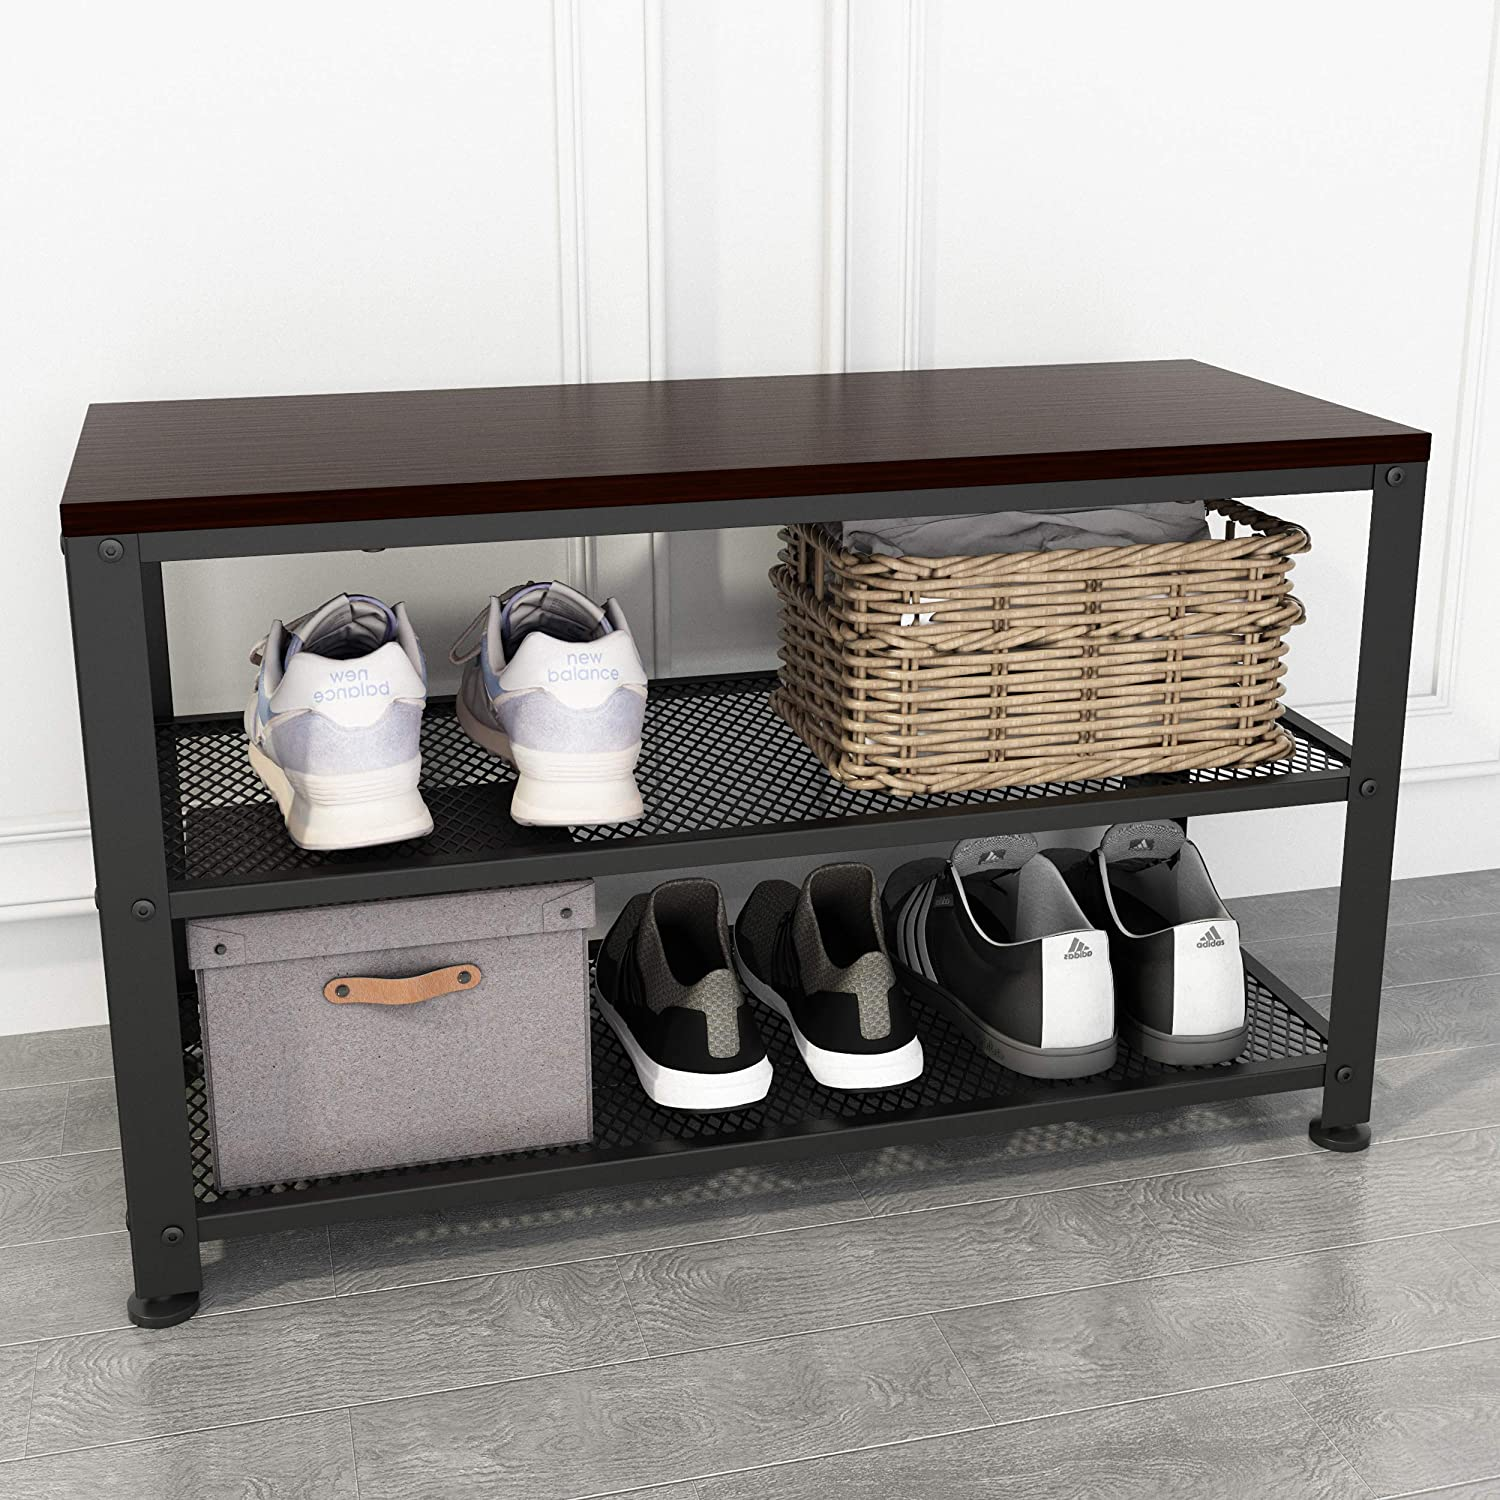 """Rustic Walnut Shoe Bench, 3-Tier Shoe Rack Bench with Mesh Shelves, Sturdy Entryway Bench with Shoe Storage, 28.74""""(W) x 11.81""""(D) x 17.72""""(H), Holds up to 220 lbs"""